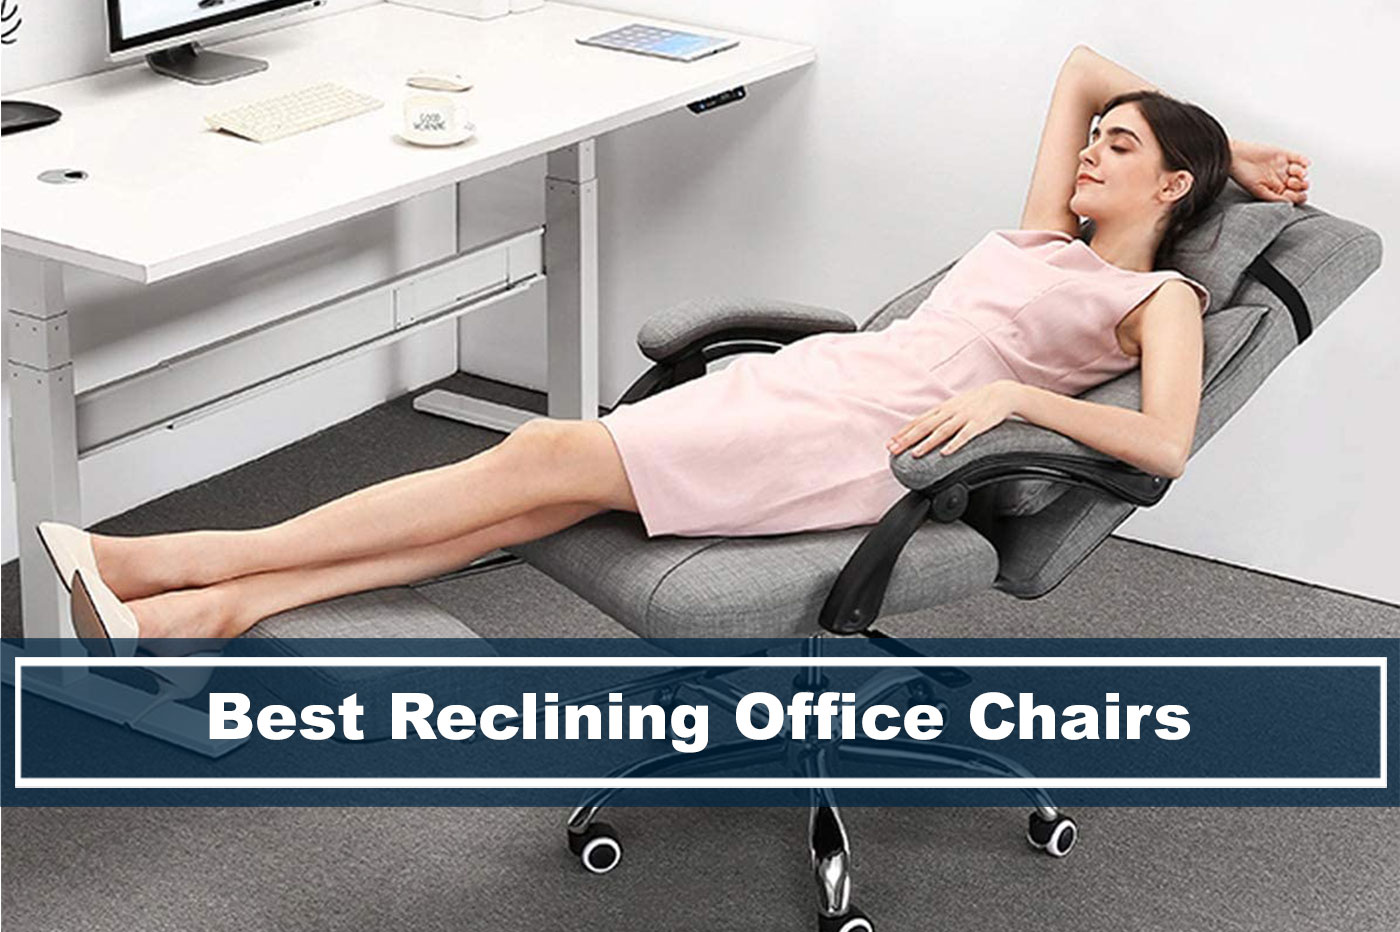 woman sleeping on the best reclining office chair